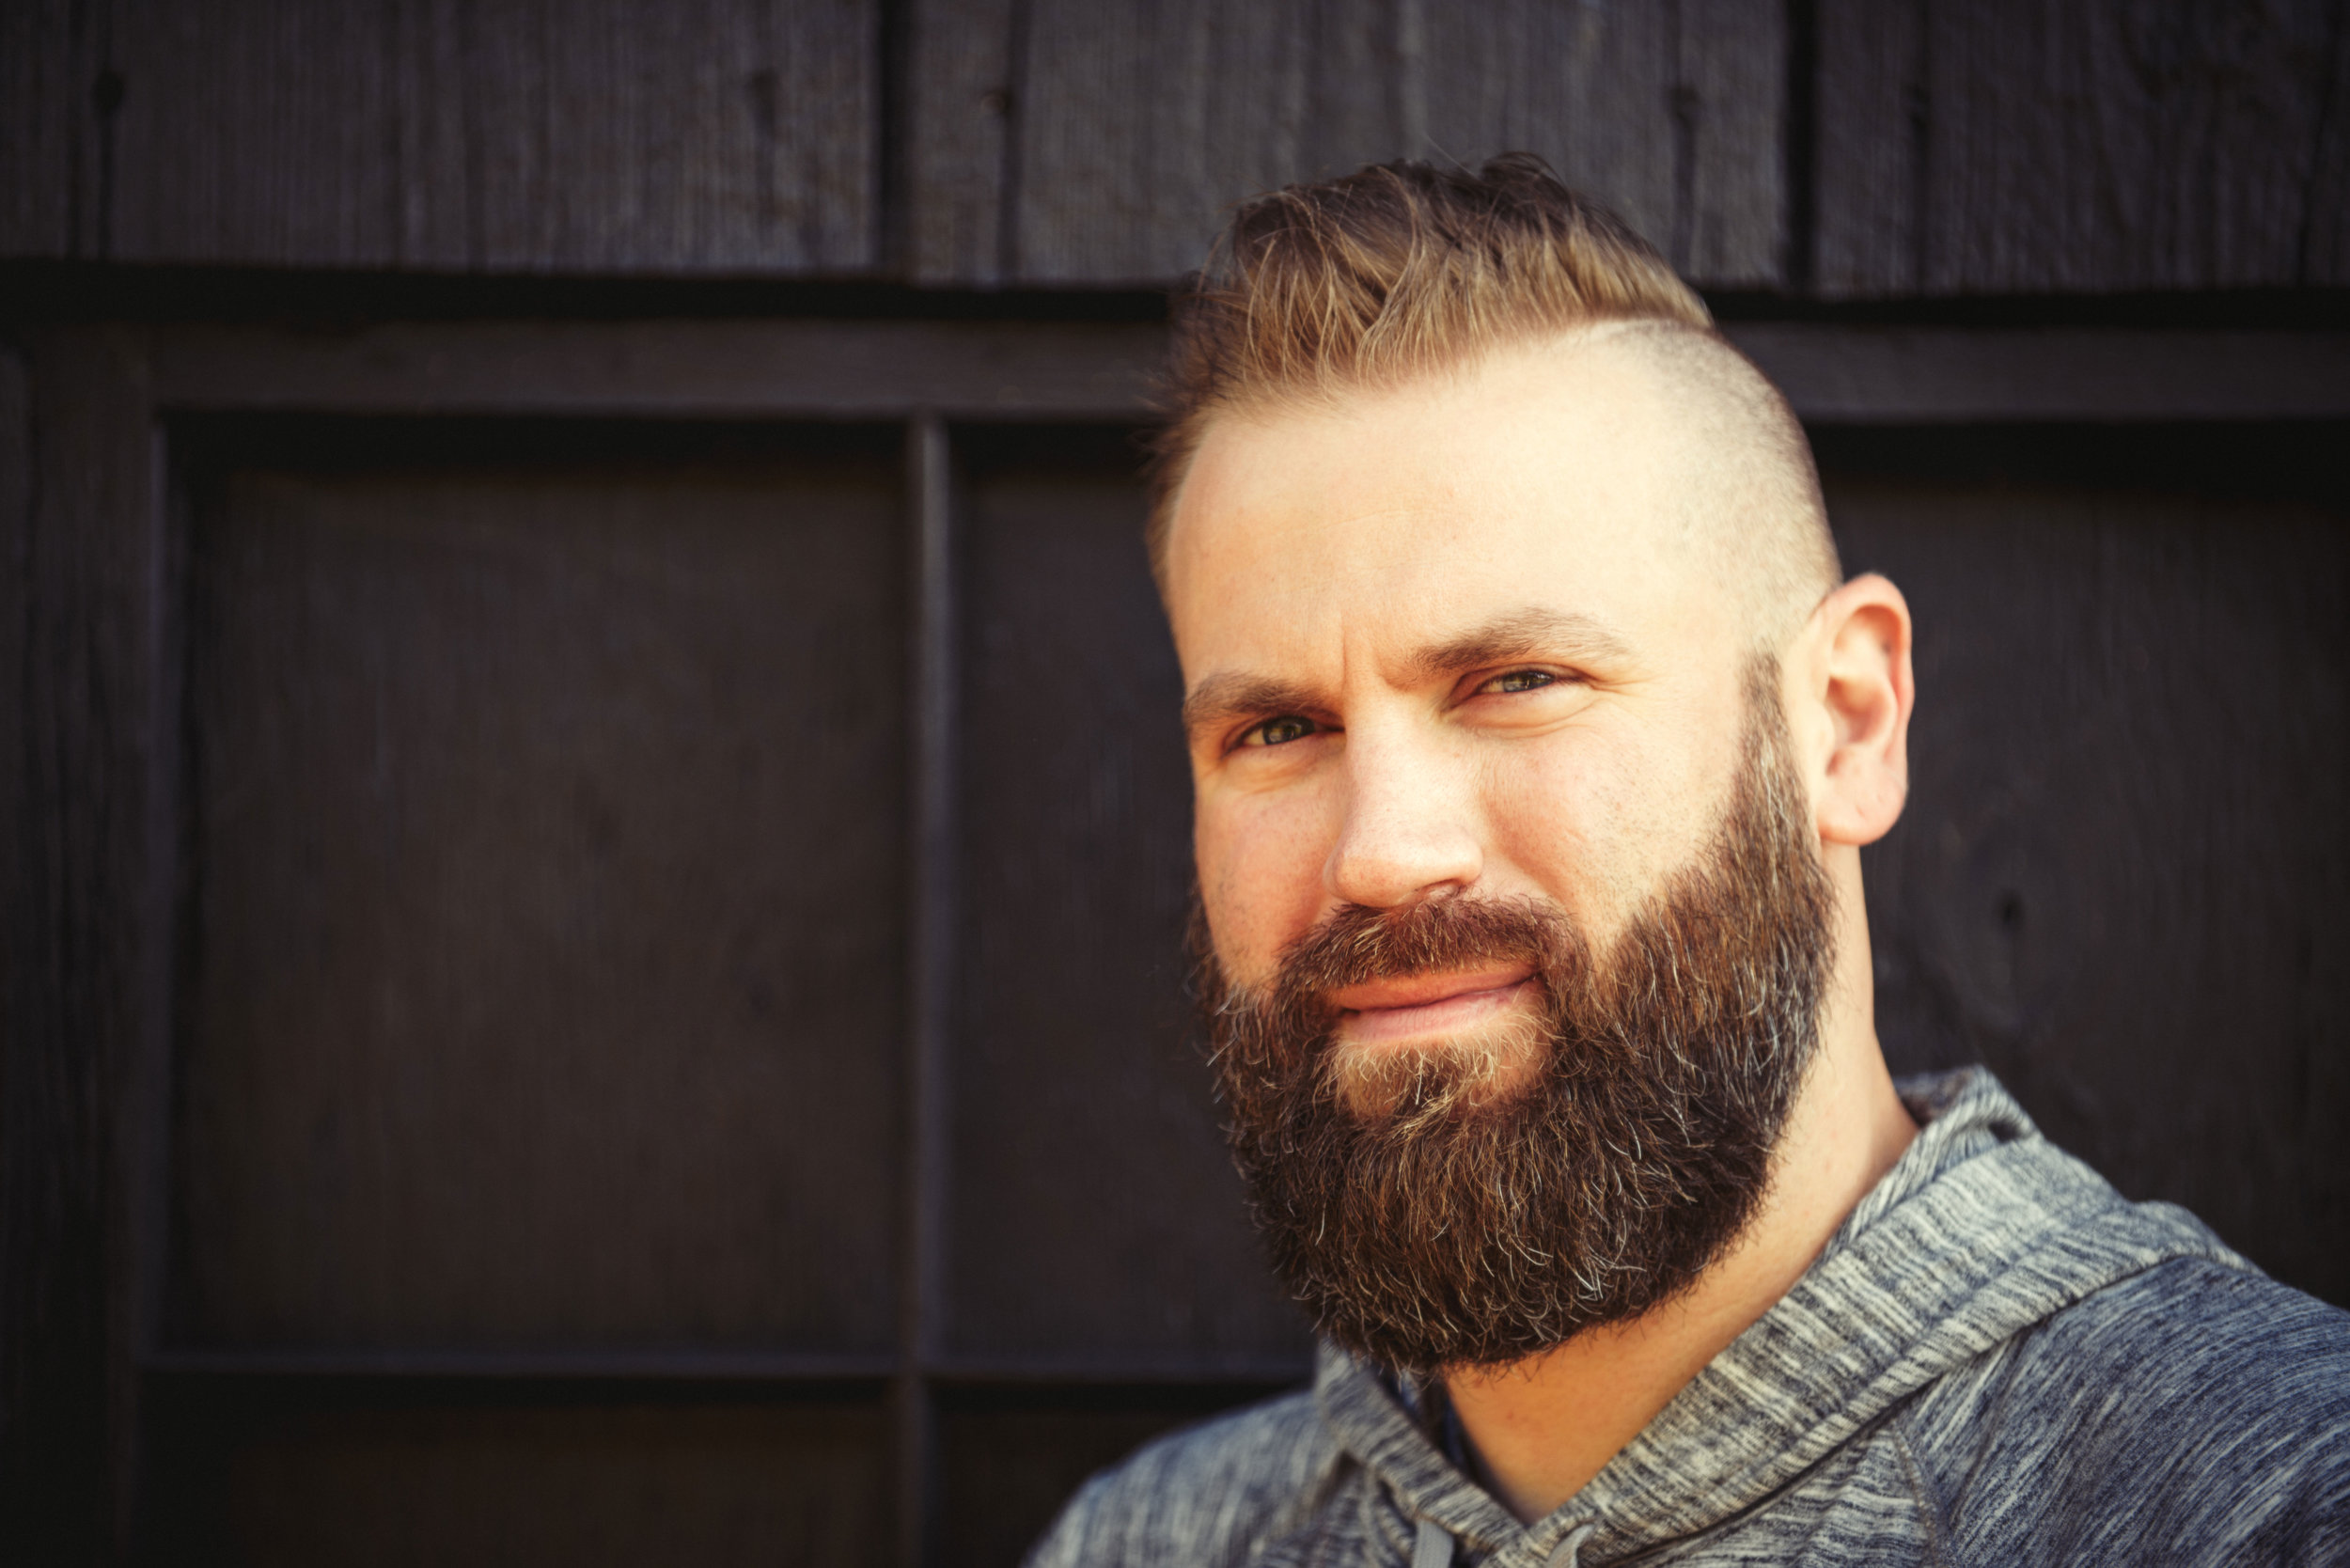 Ryan Stout Letters & Grain Remember When Portraits No-Shave November